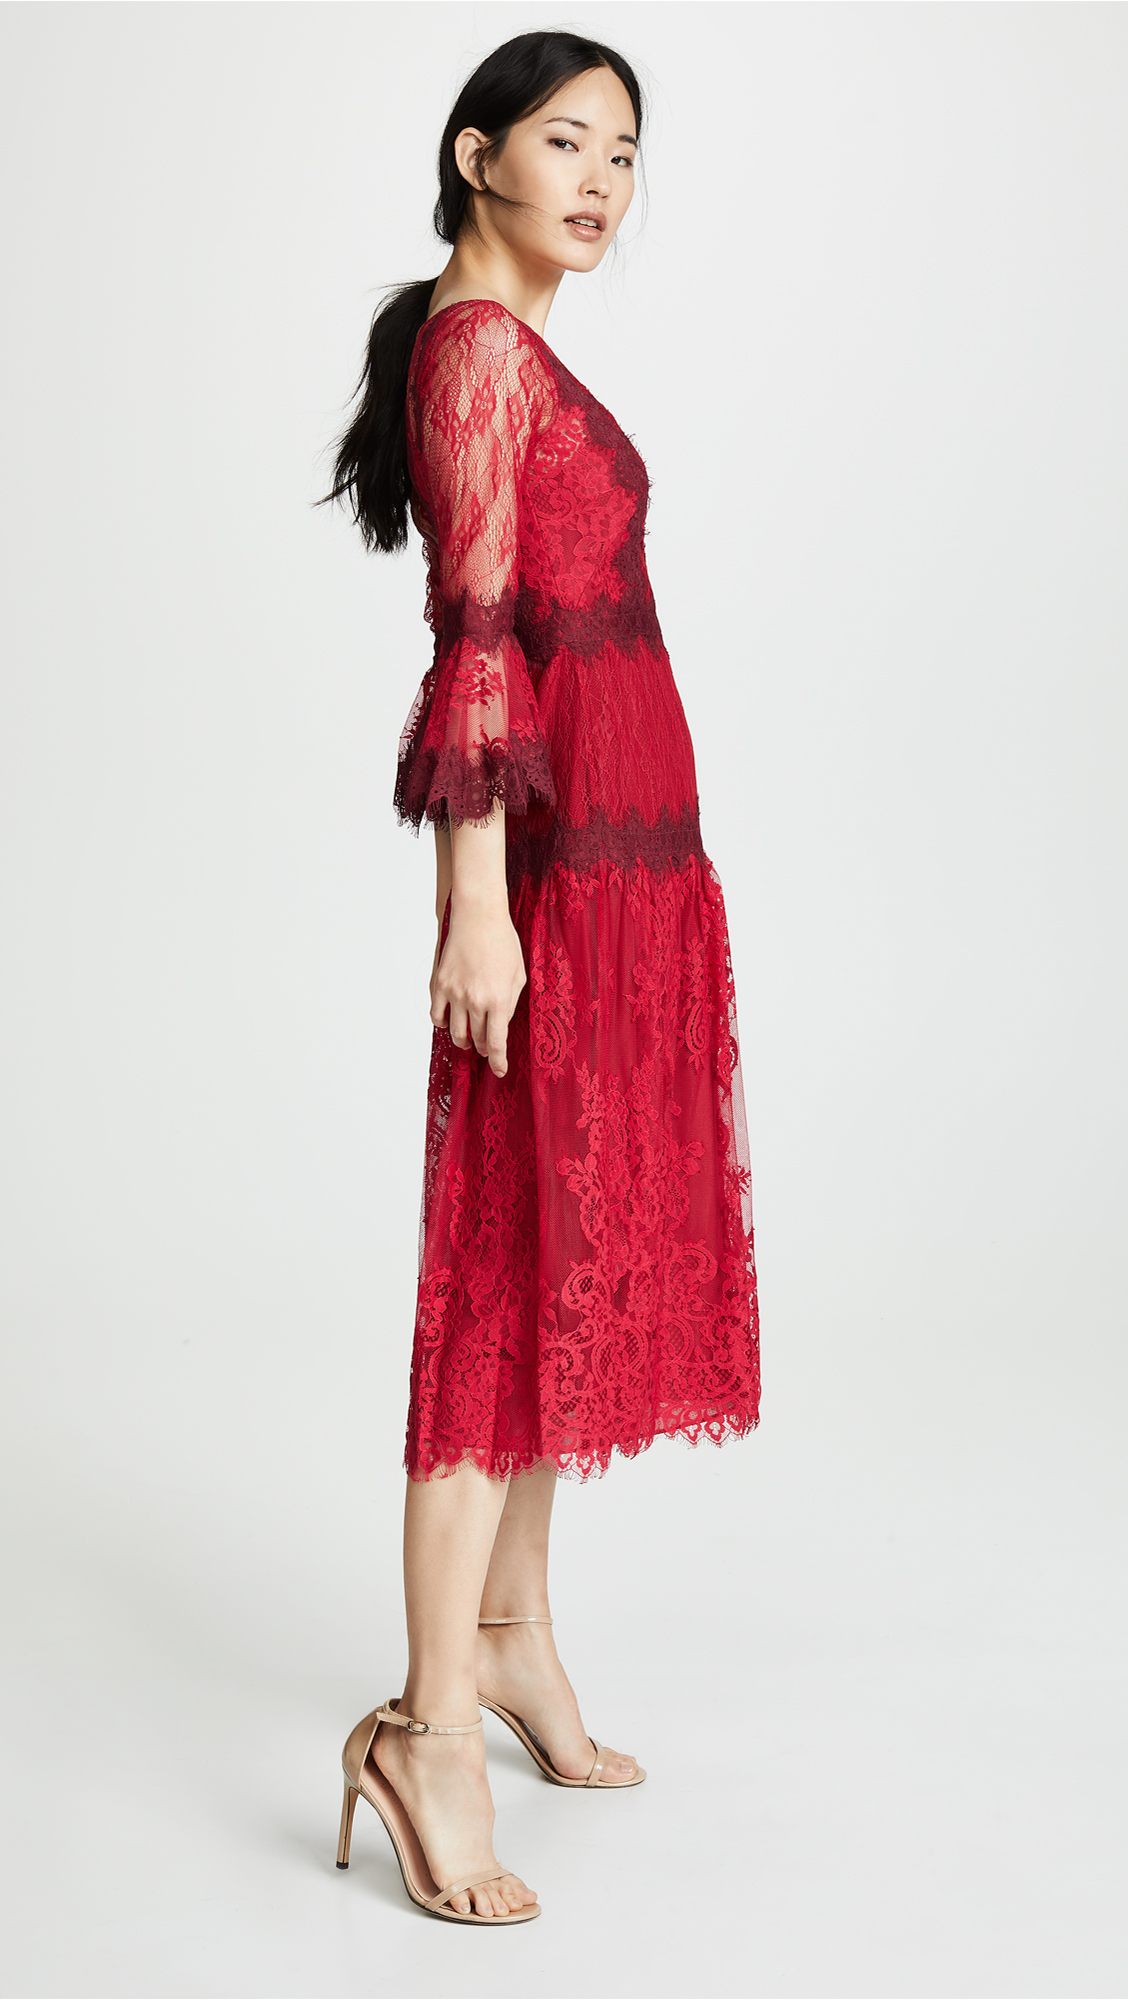 fa1a8f71c32 Marchesa Notte Mixed Lace Tea Length Cocktail Dress